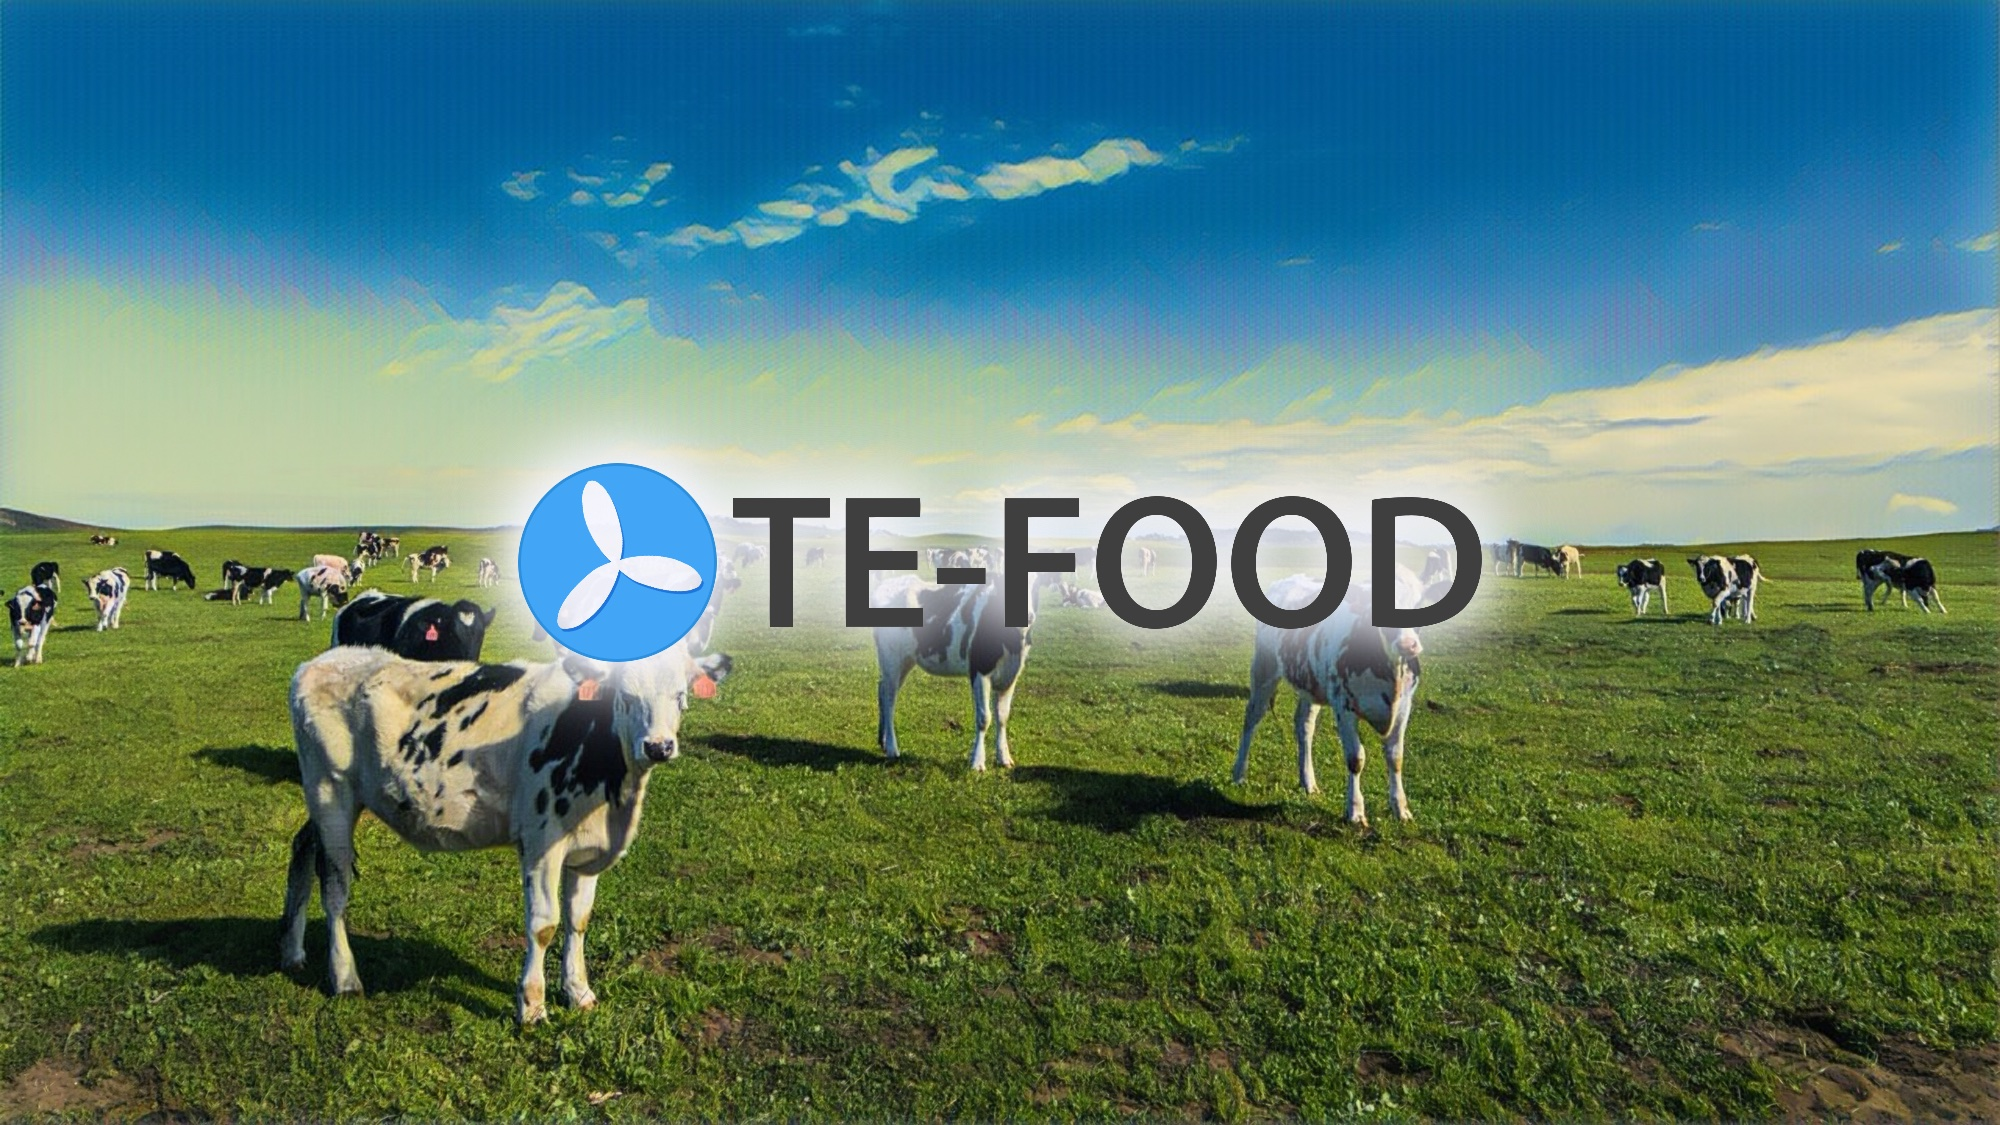 TE-FOOD Joins the UN Sustainable Food Systems Programme